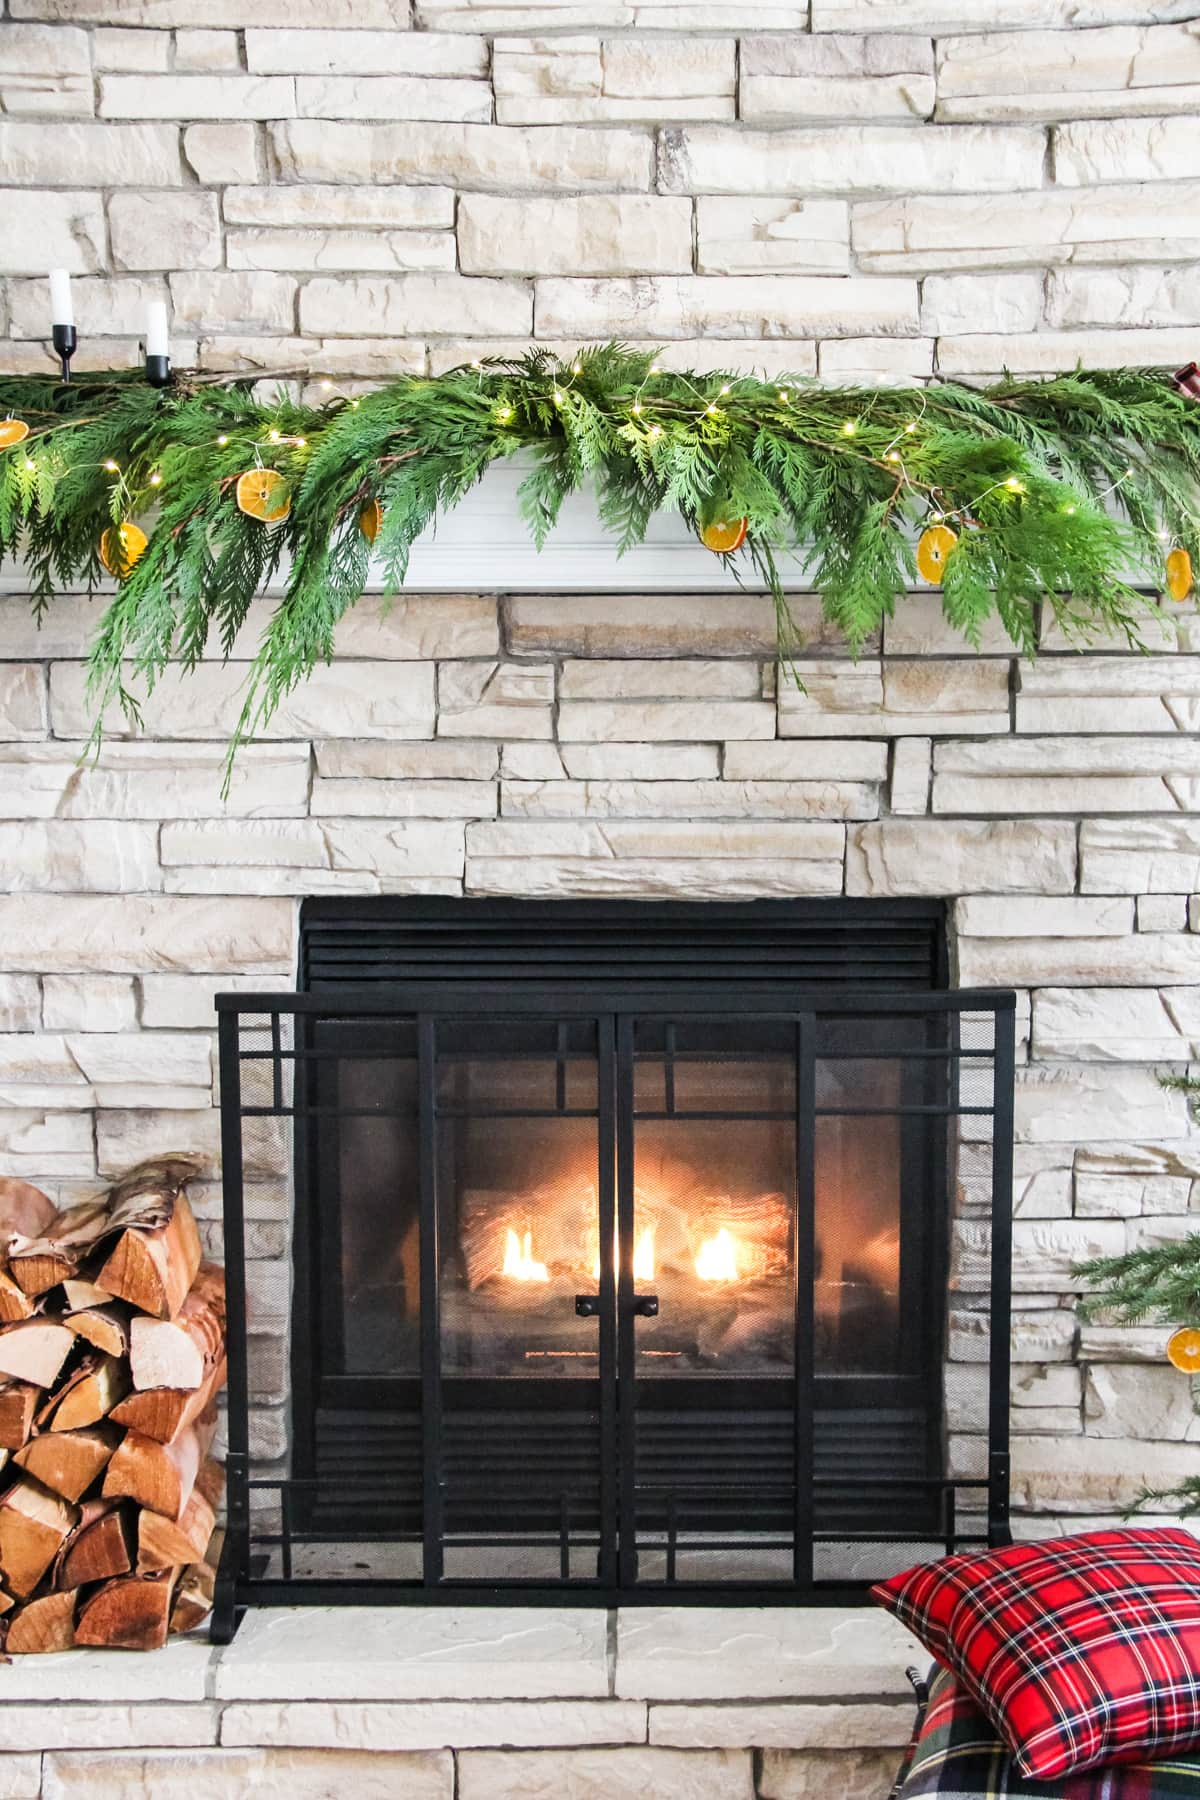 a fireplace mantel decorated with fresh cedar boughs, orange slice ornaments, string fairy lights and plaid ribbon. With a fire roaring in the fireplaces and a stack of wood on the left